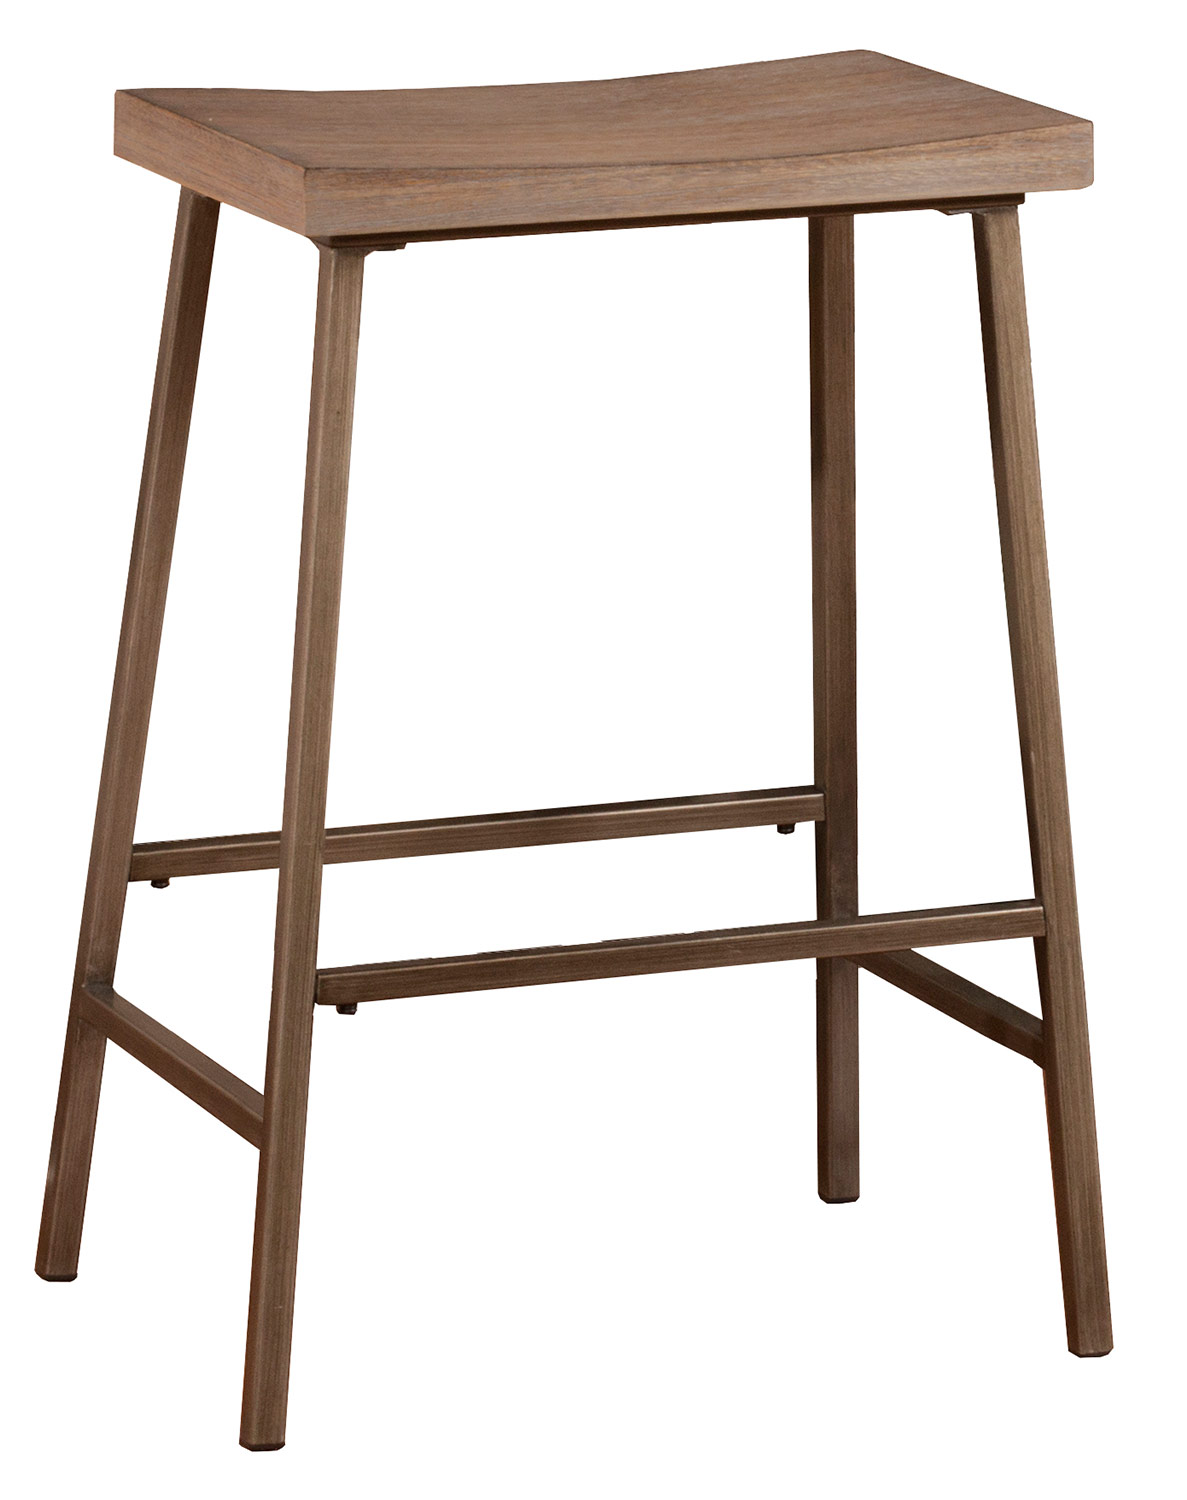 Hillsdale Kennon Backless Non-Swivel Counter Stool - Brown Metal/Distressed Brown Gray Finished Top